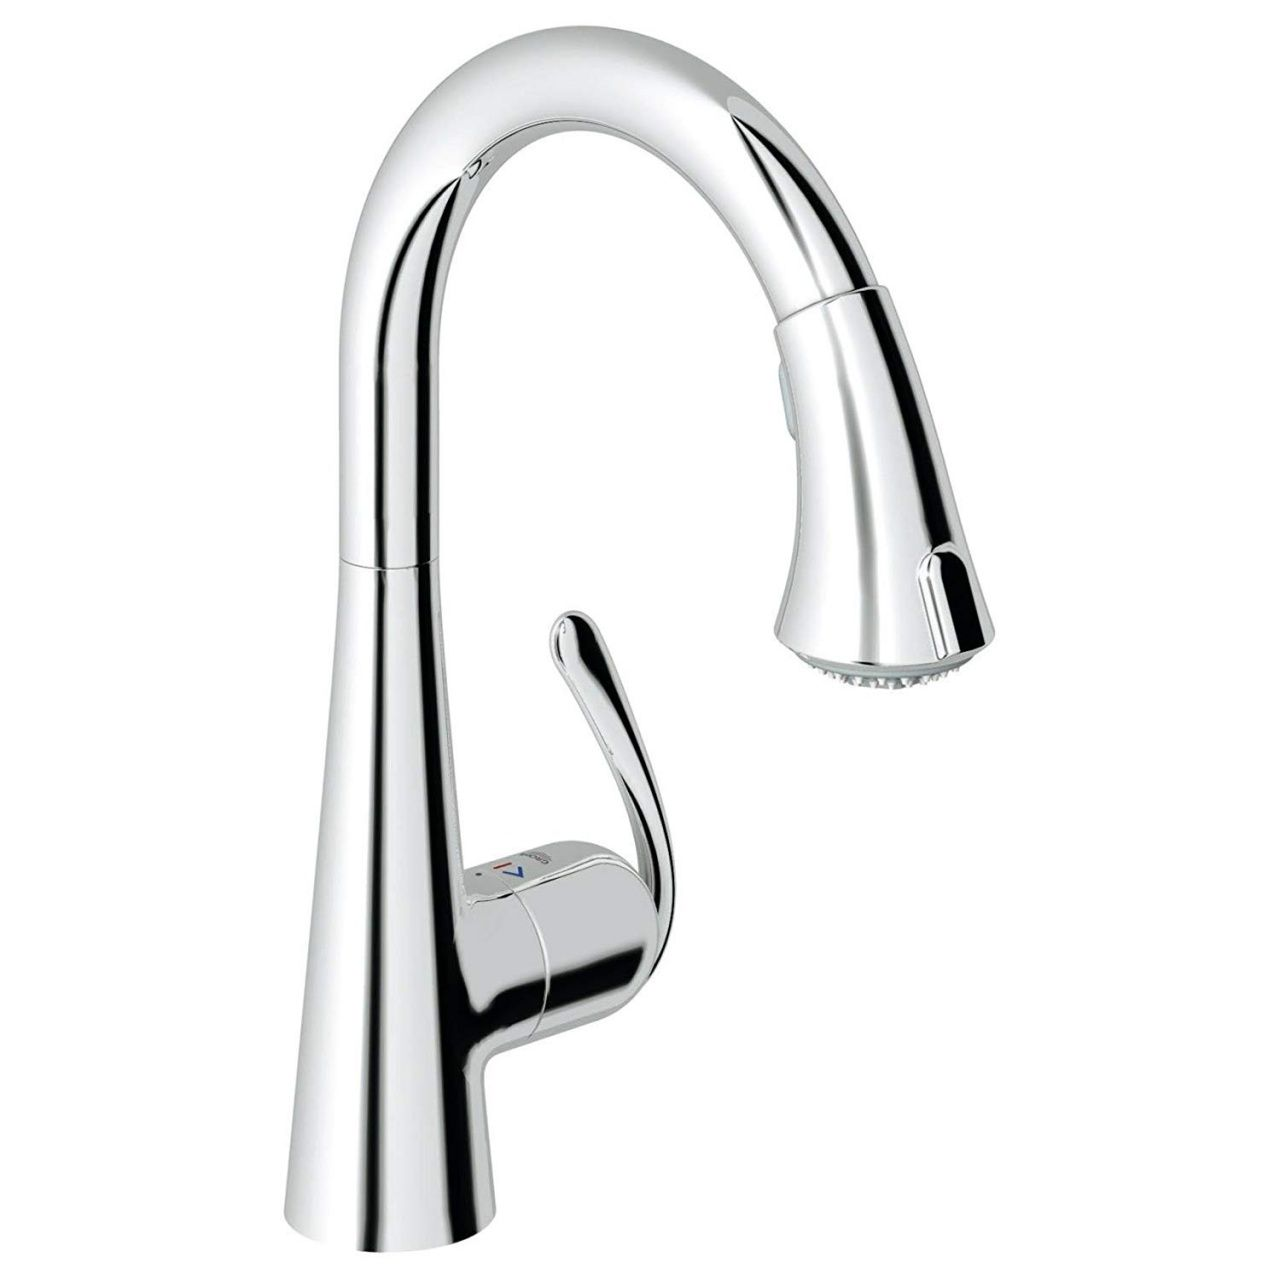 Moen Single Handle Kitchen Faucet With Pullout Spray Repair Single Handle Bathroom Faucet Moen Kitchen Faucet Grohe Bathroom Faucets [ 1280 x 1280 Pixel ]